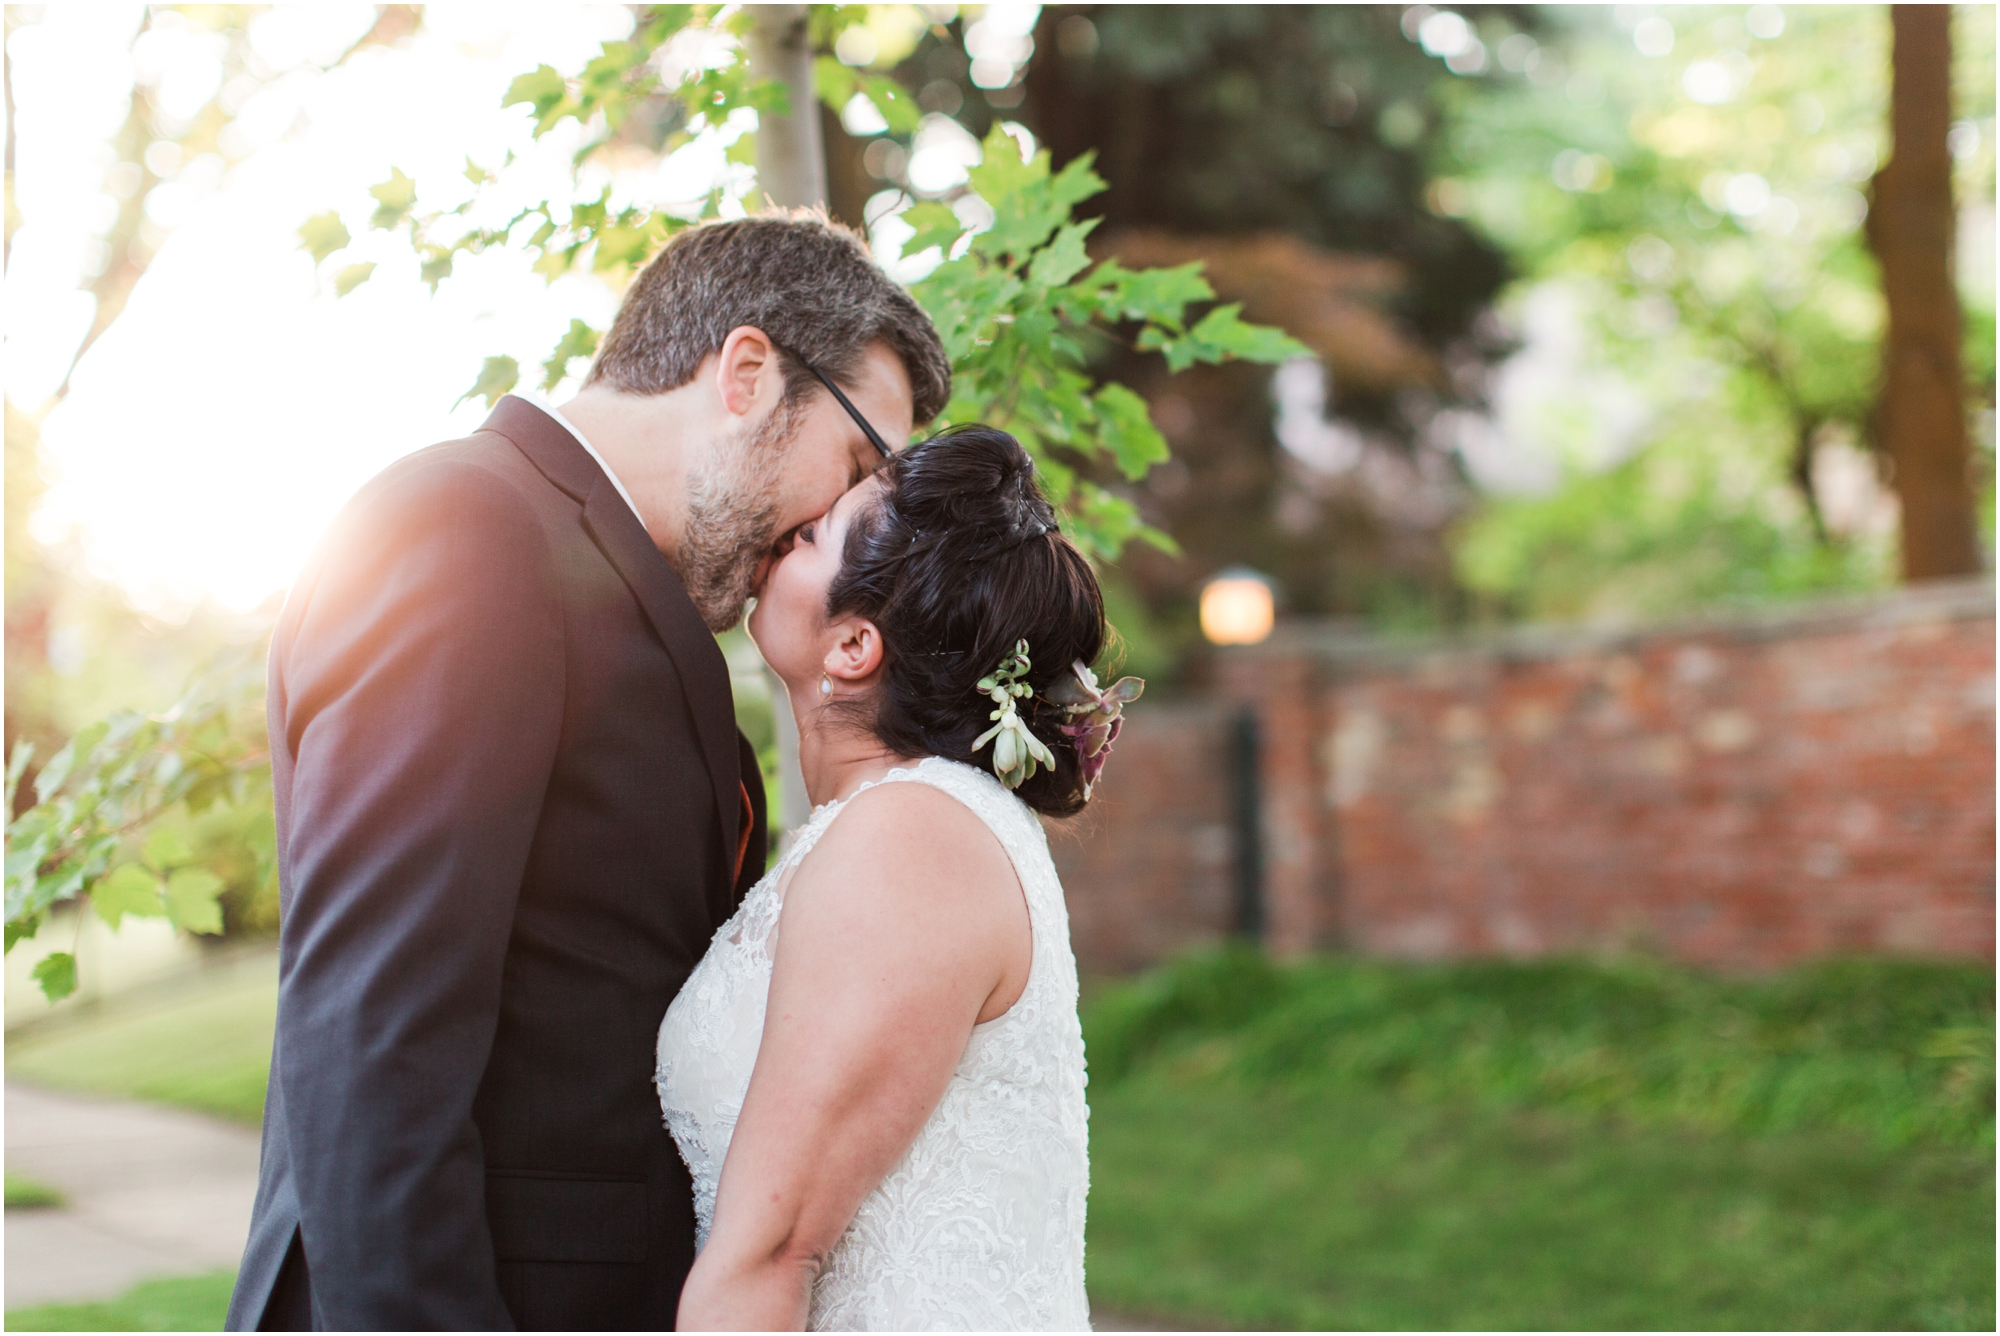 Garden wedding in Ellensburg, WA. Photos by Briana Calderon Photography based in the greater Seattle-Tacoma Area._1356.jpg